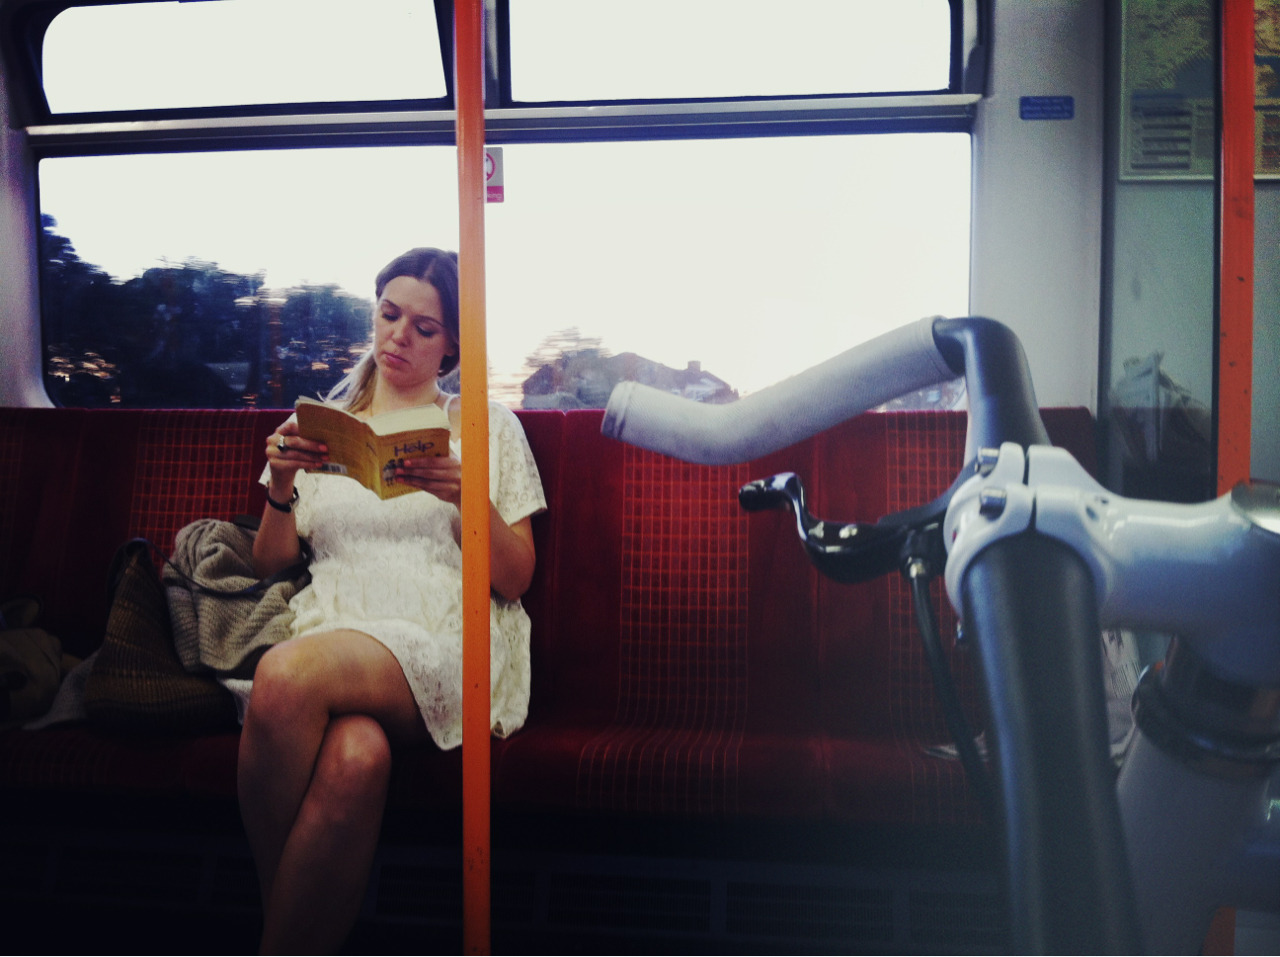 Sarah reading on the train.